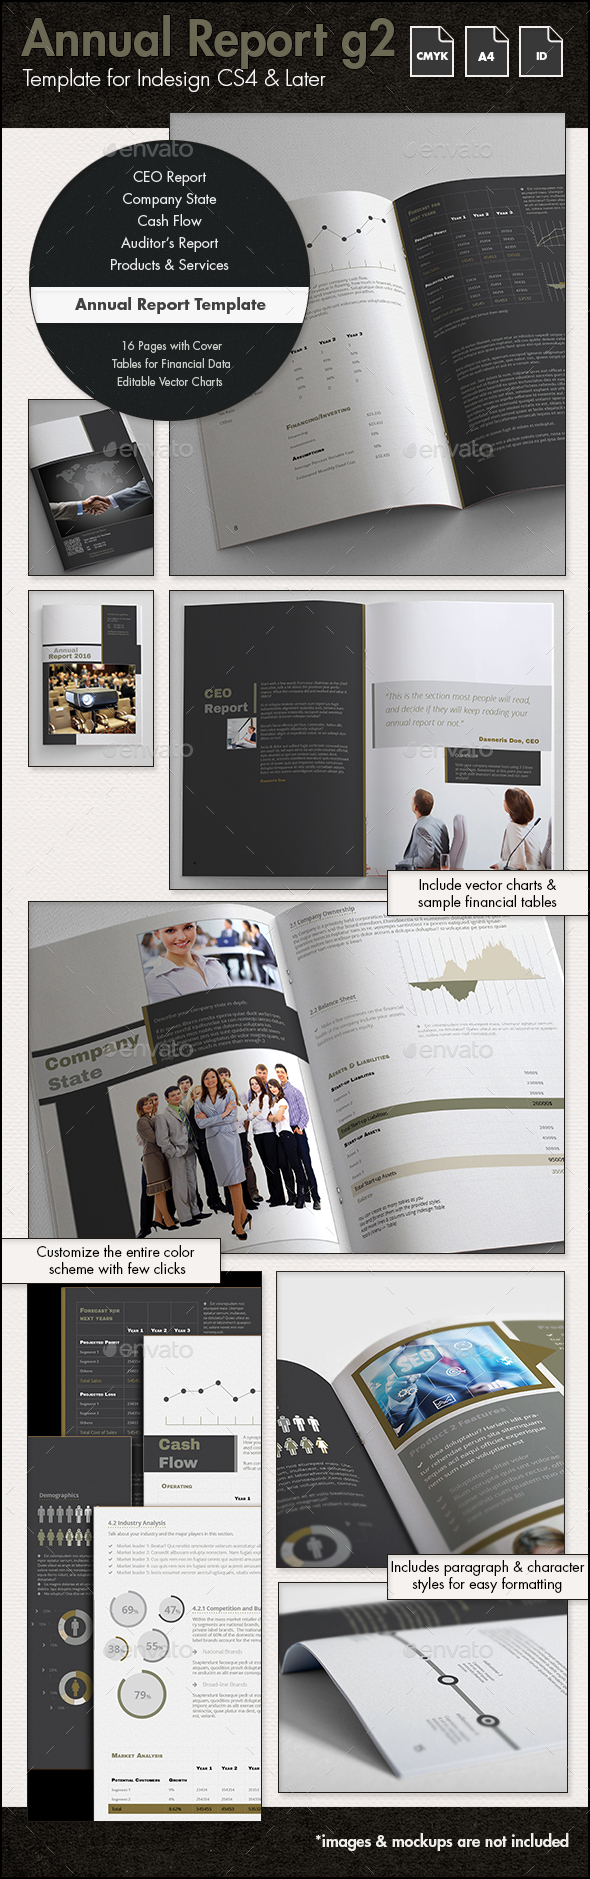 Annual Report Template g2 - A4 Portrait - Print Templates